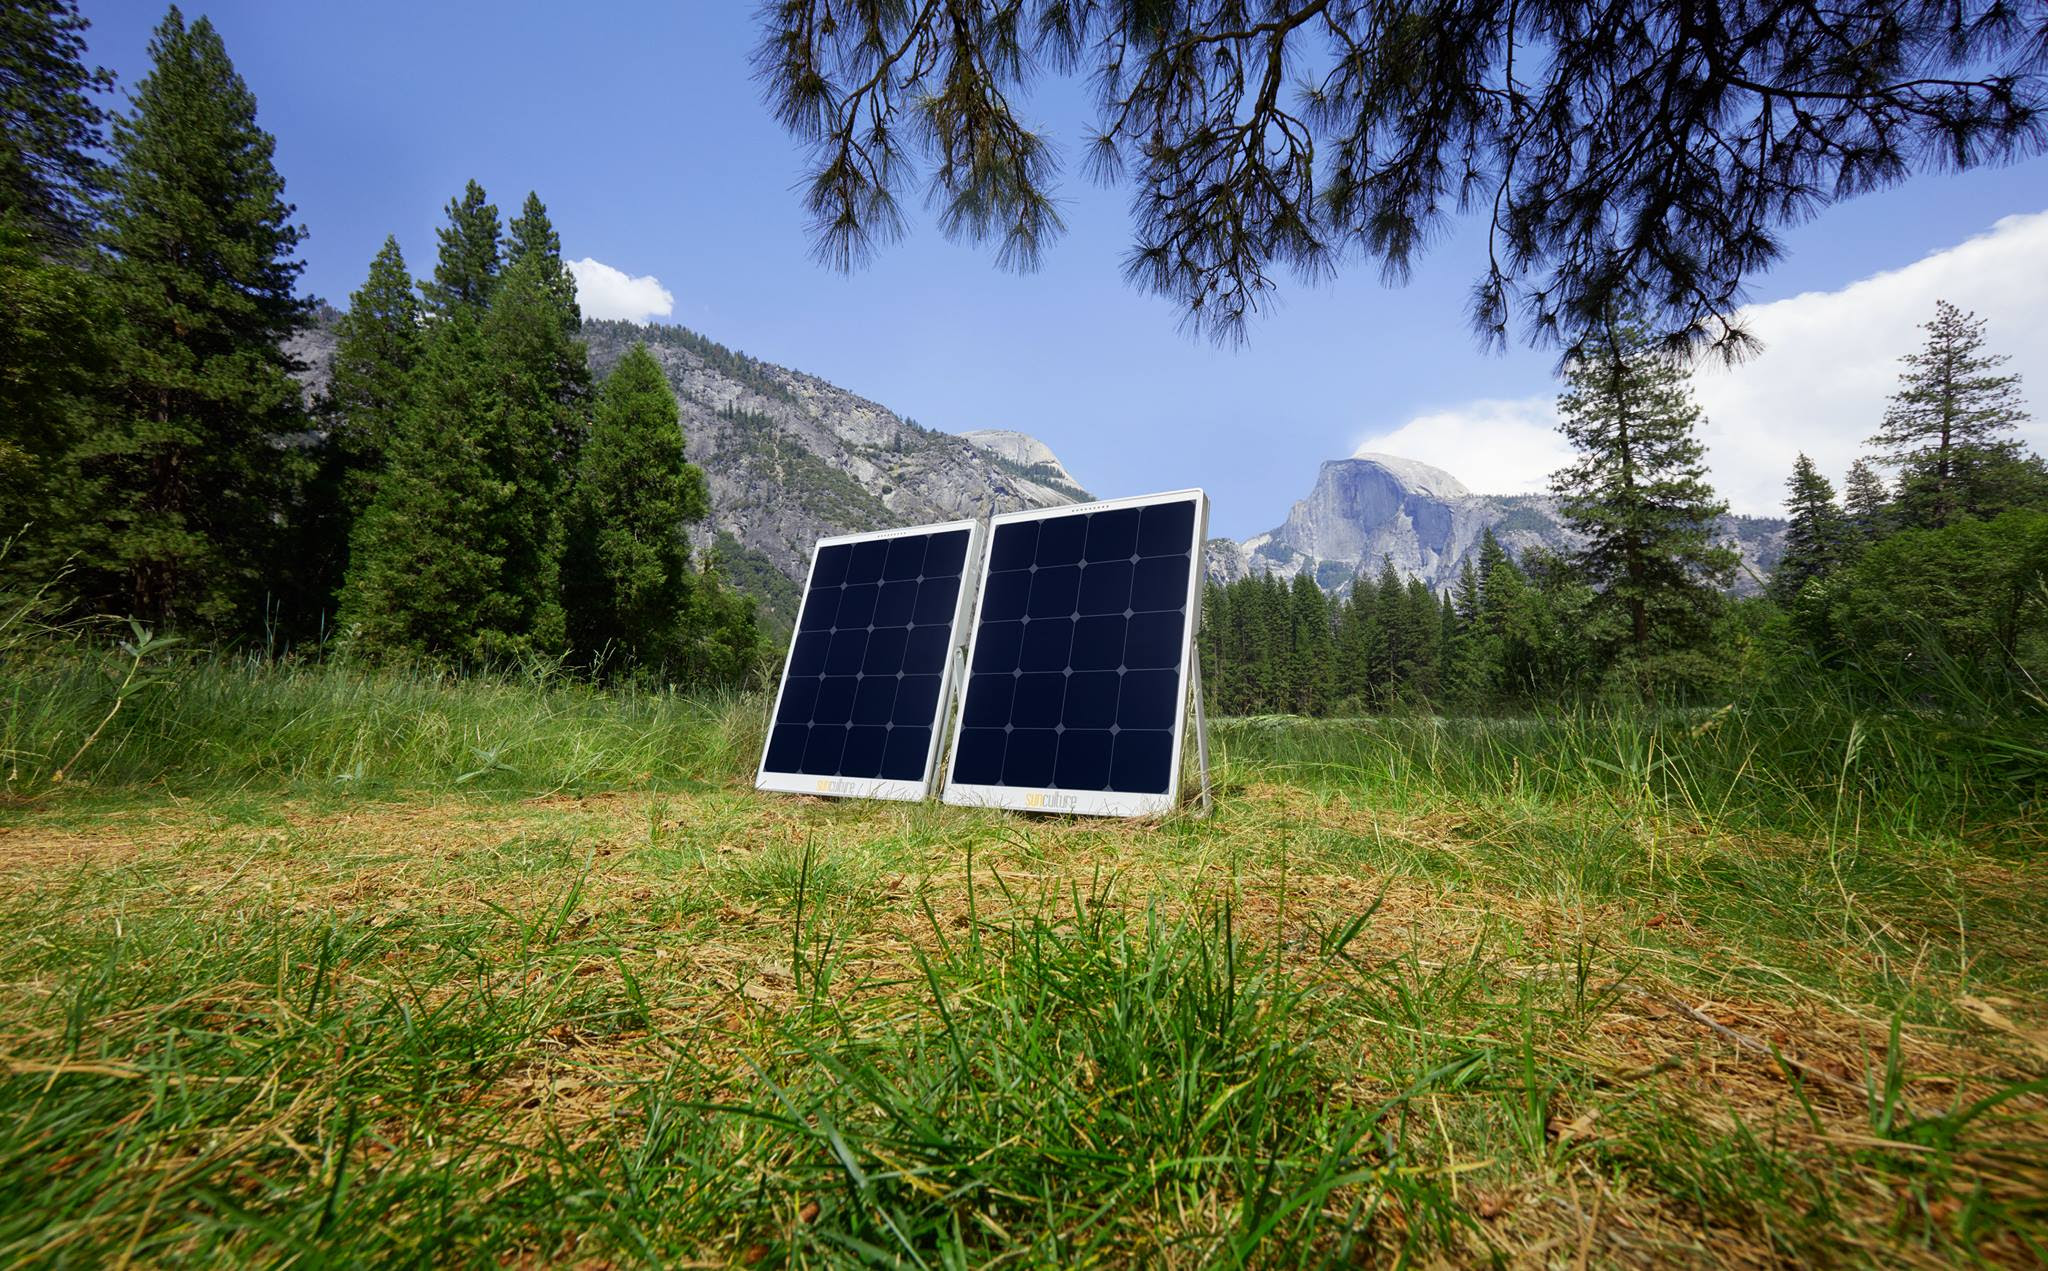 GaN Systems' Transistors Enable SolPad's Revolutionary Solar Power Inverter